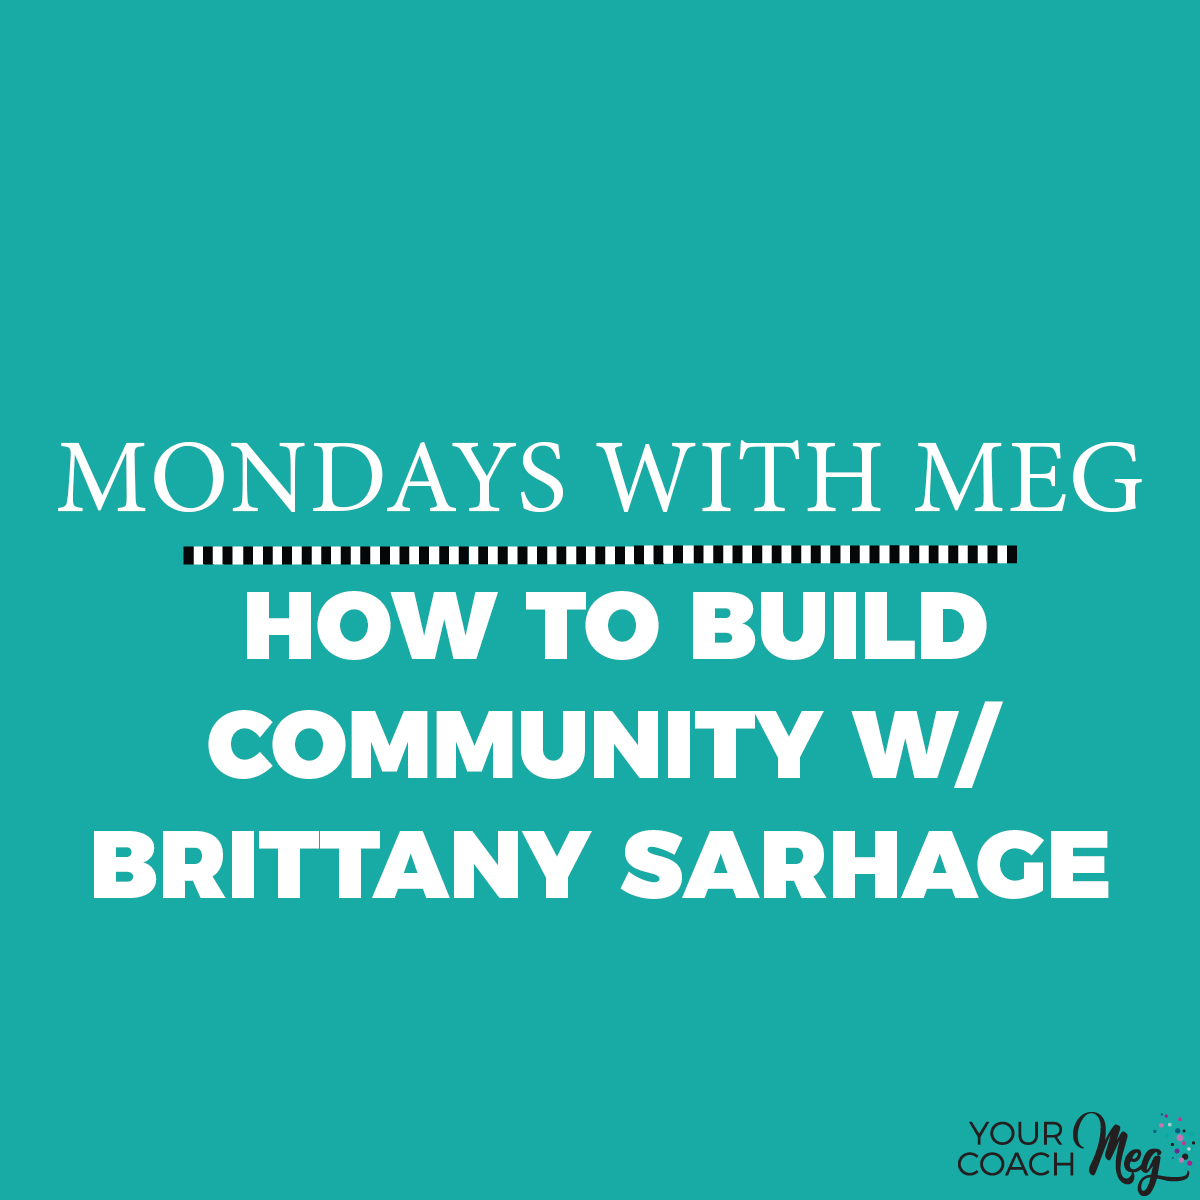 MONDAYS WITH MEG W/ BRITTANY SARHAGE: BUILD COMMUNITY.jpg